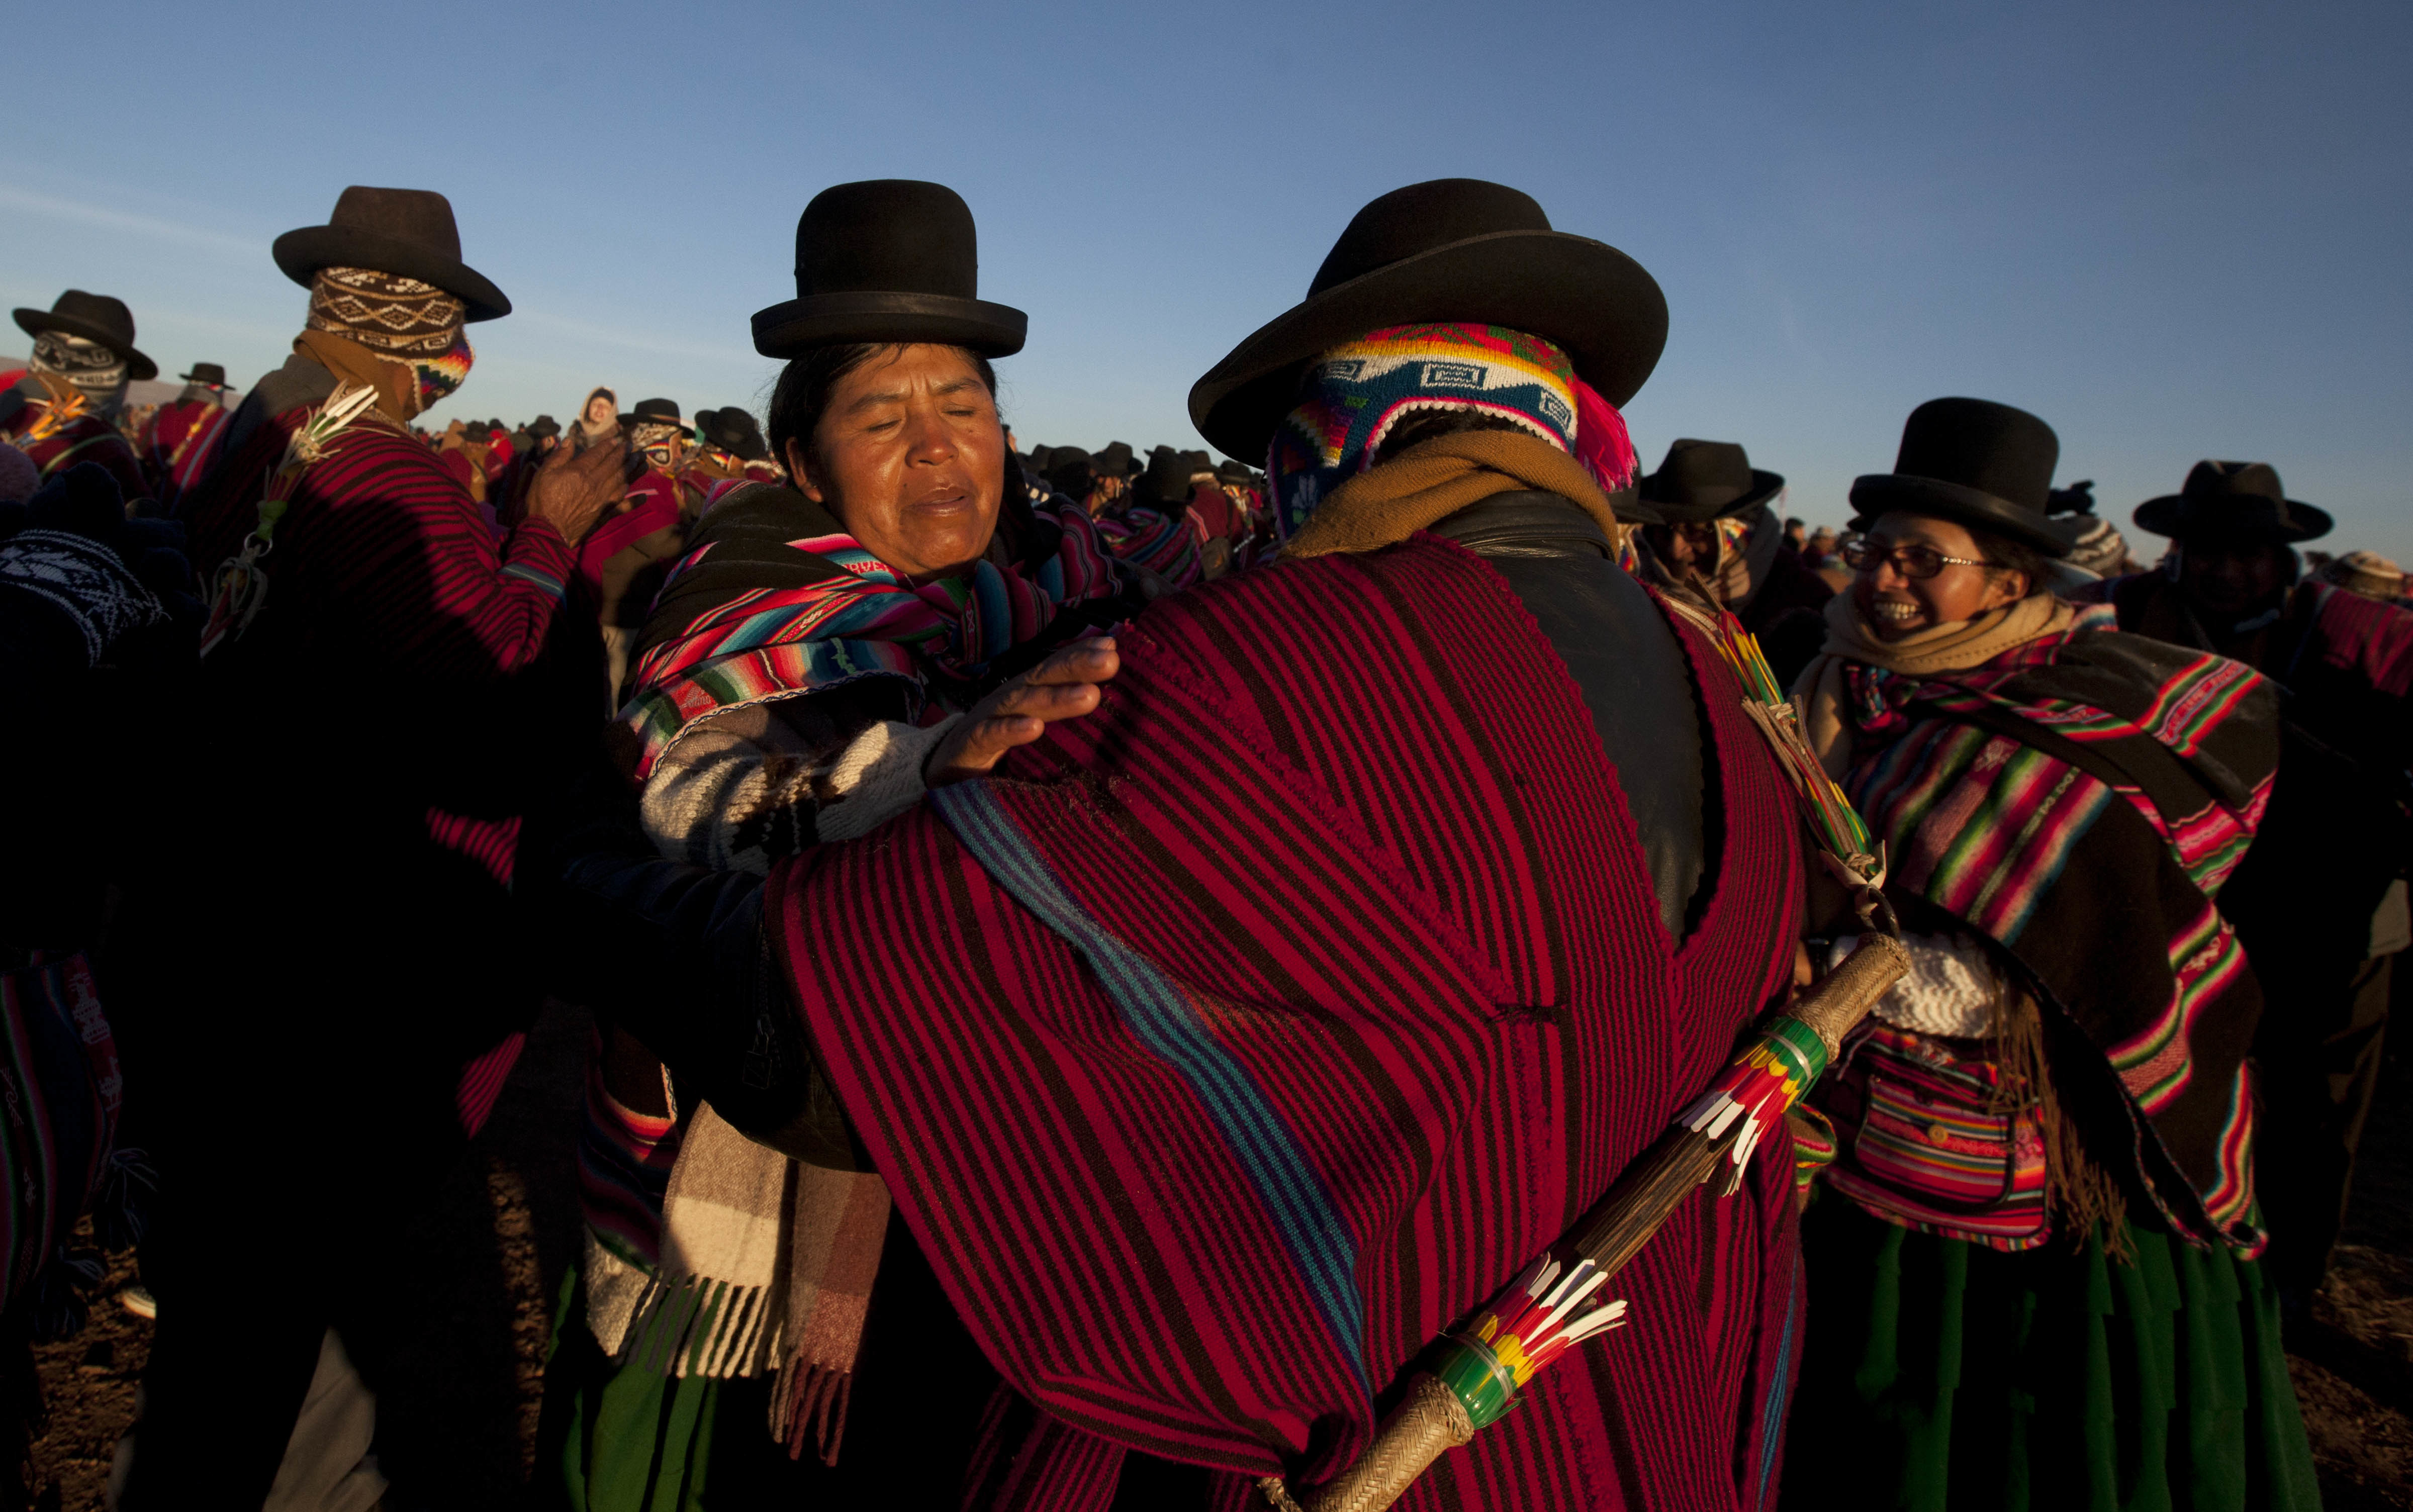 Aymara Indians embrace while receiving the first rays of sunlight in a New Year's ritual at the ruins of the ancient city Tiwanaku, Bolivia, early Wednesday, June 21, 2017. Bolivia's Aymara Indians are celebrating the year 5,525 as well as the Southern Hemisphere's winter solstice, which marks the start of a new agricultural cycle. (AP Photo/Juan Karita)